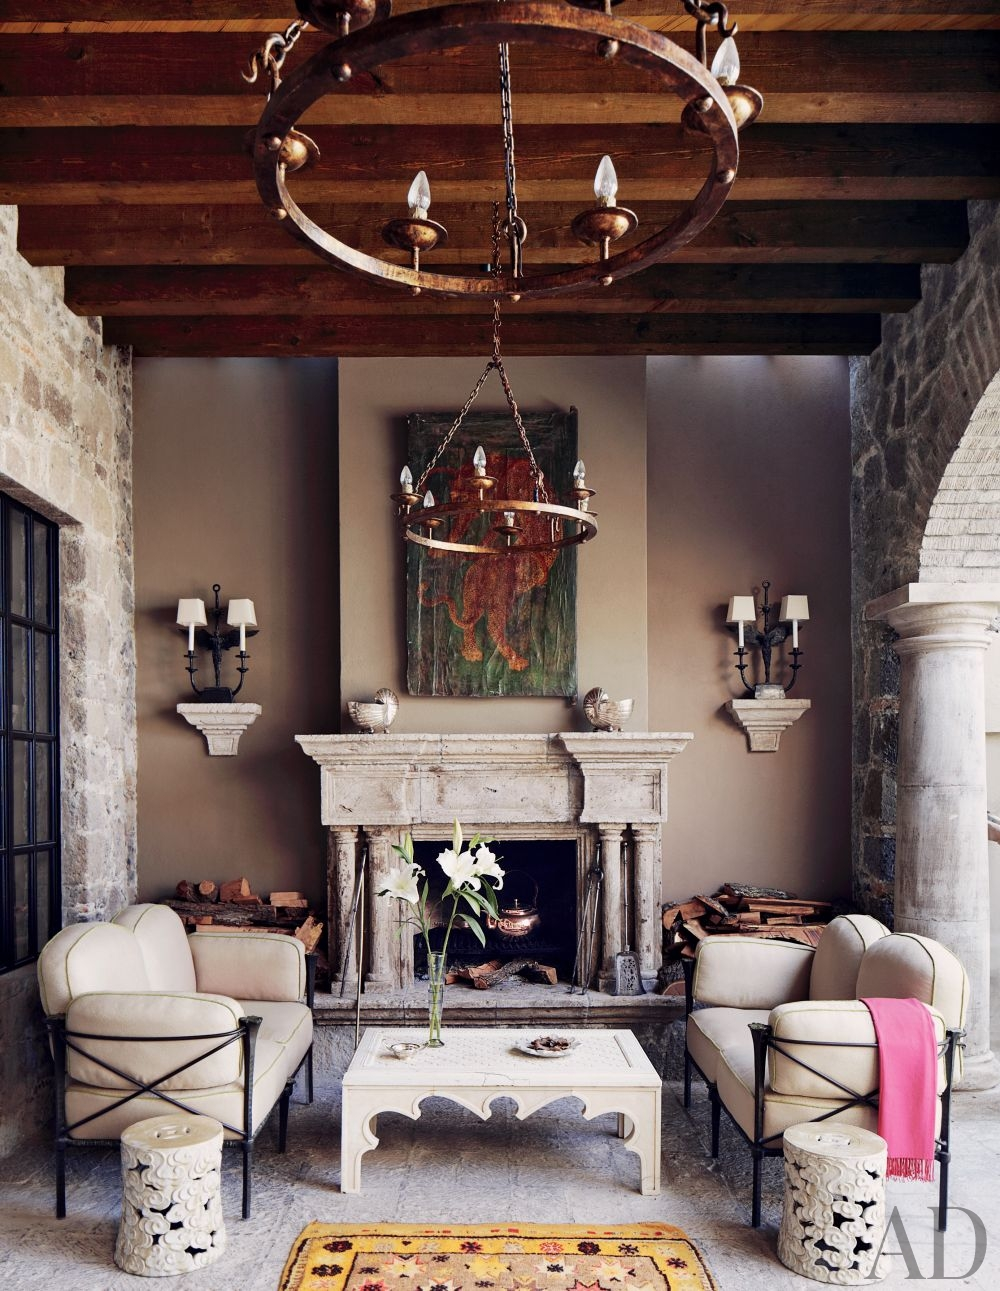 Books by the fire for Artful decoration interiors by fisher weisman